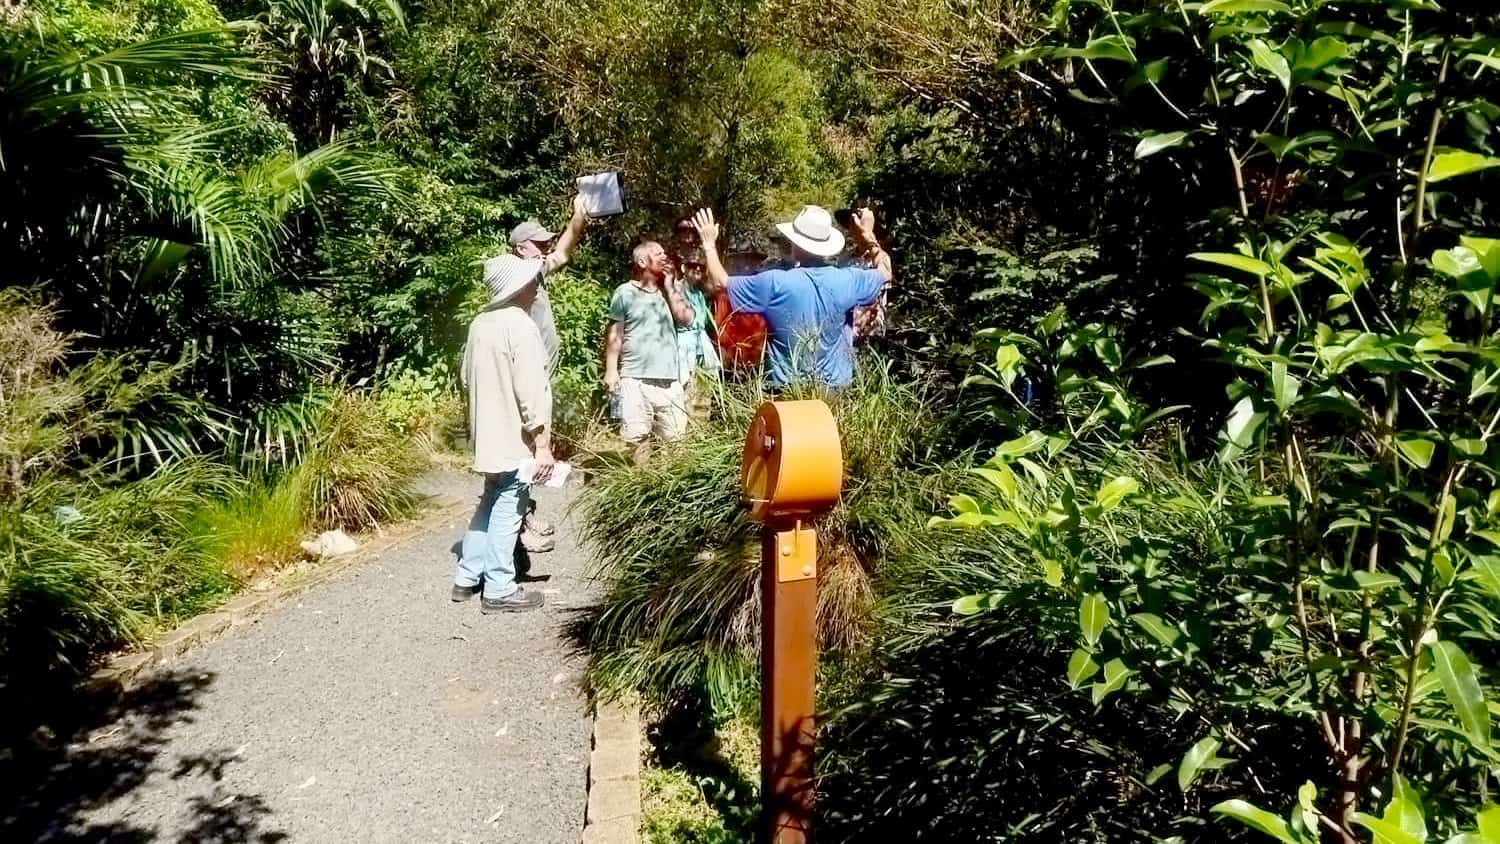 Armsign U-Turn Round provided by Blackbox-av installed at Lismore Rainforest Botanic Gardens